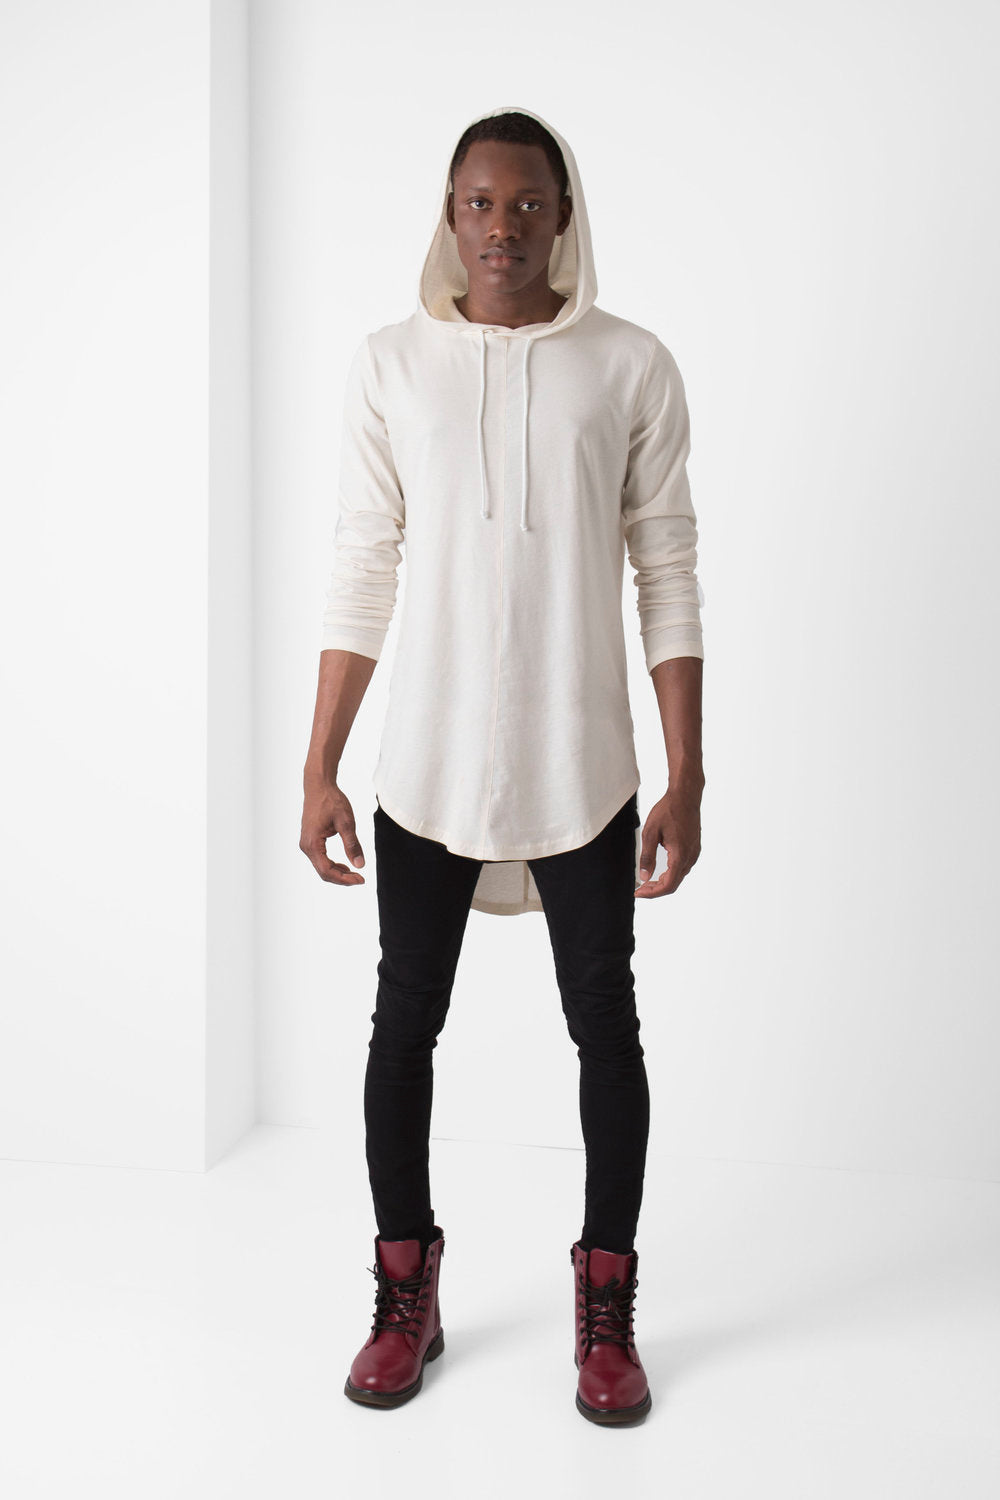 Off-White High Low Hooded T-Shirt - pacorogiene